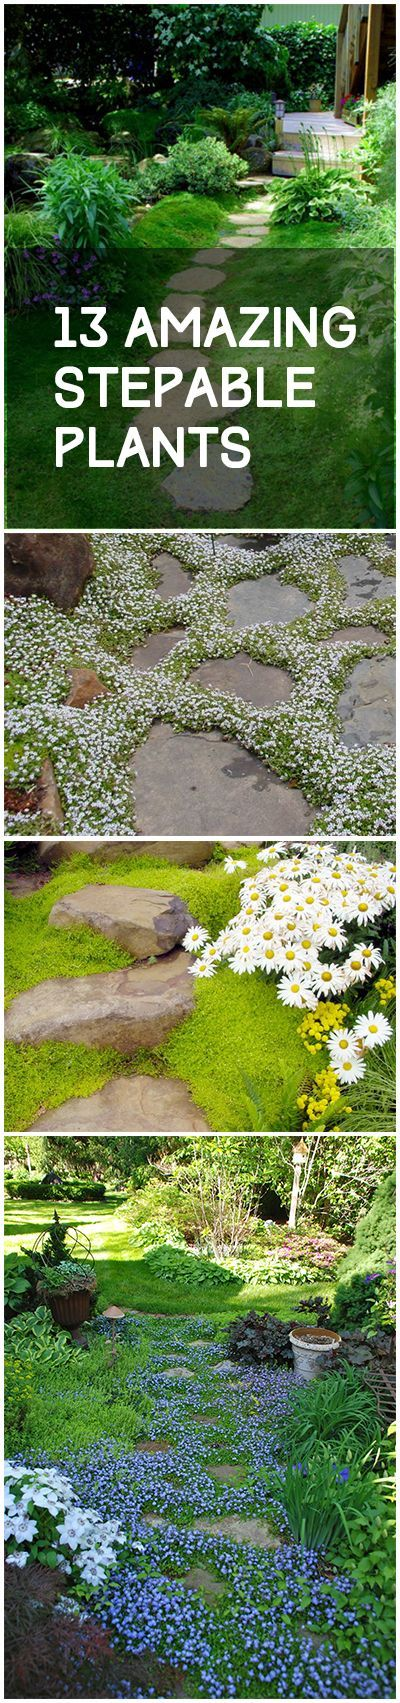 Amazing stepable plants for yard and garden gardens for Landscaping ground cover plants